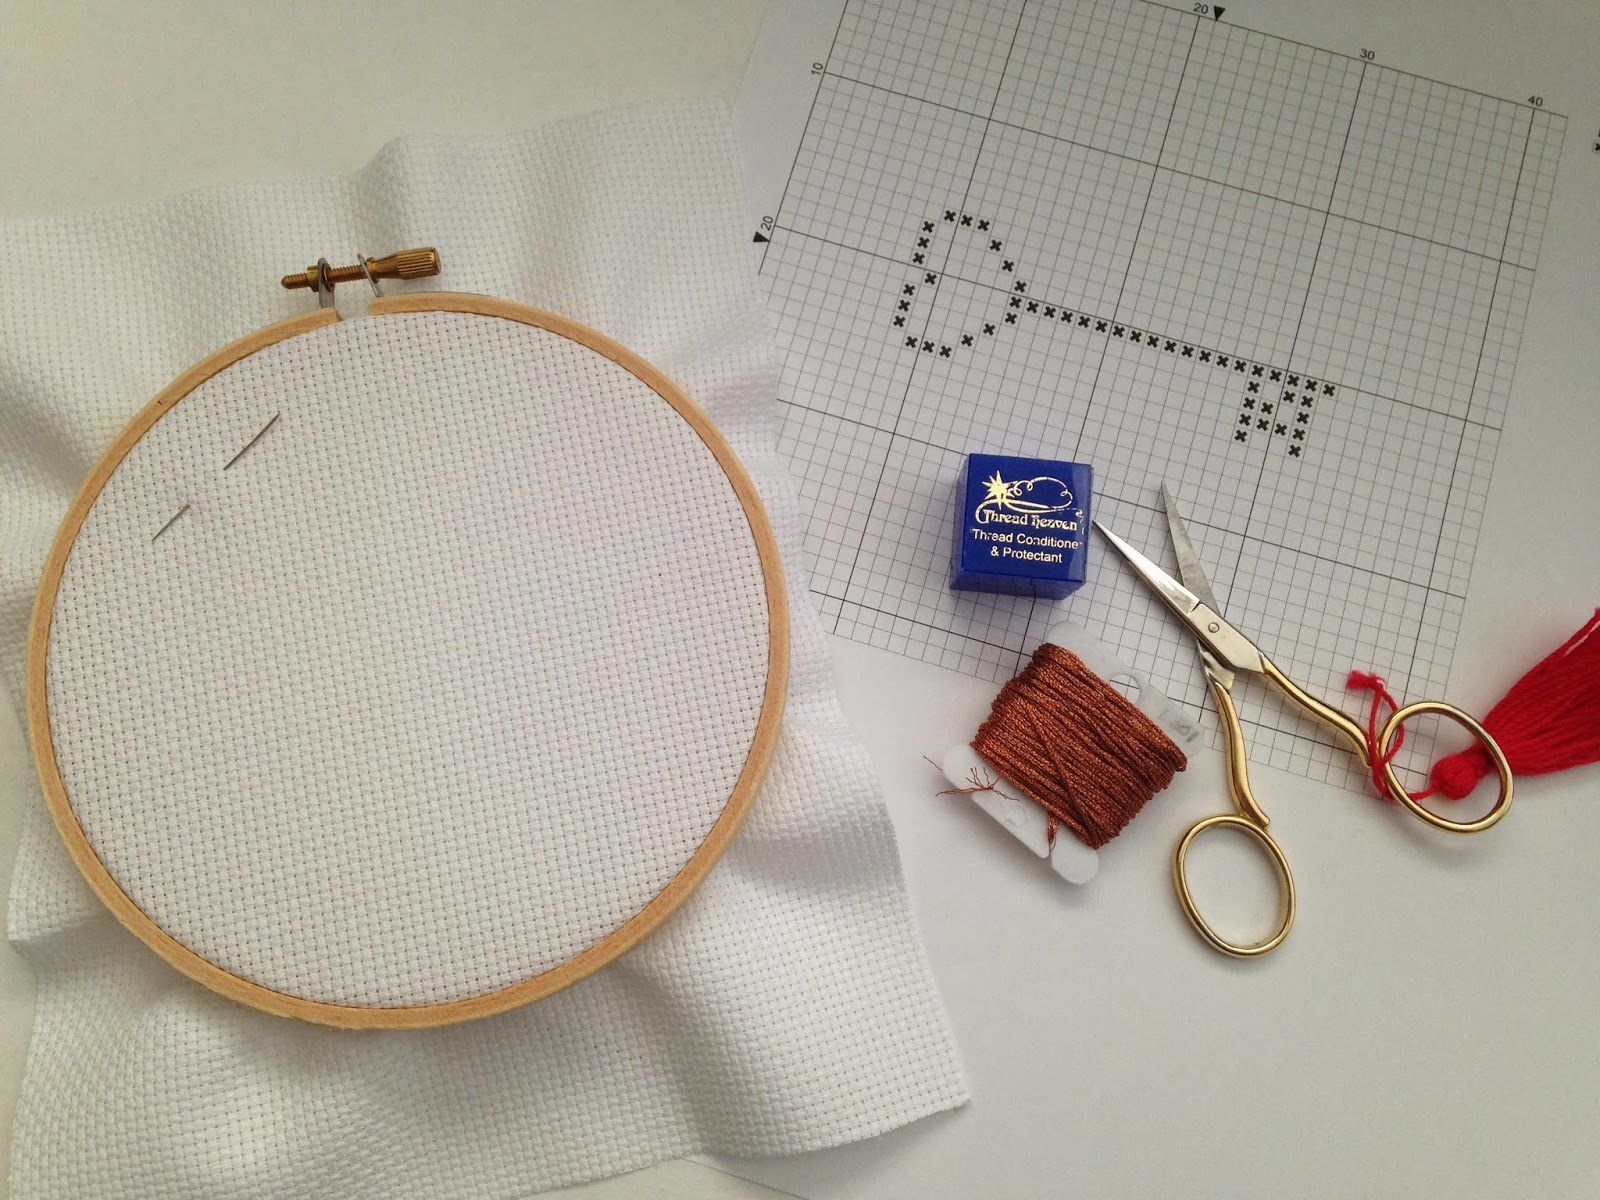 Cross Stitch Embroidery Hoop Needles Thread Floss Scissors and Design for New Project